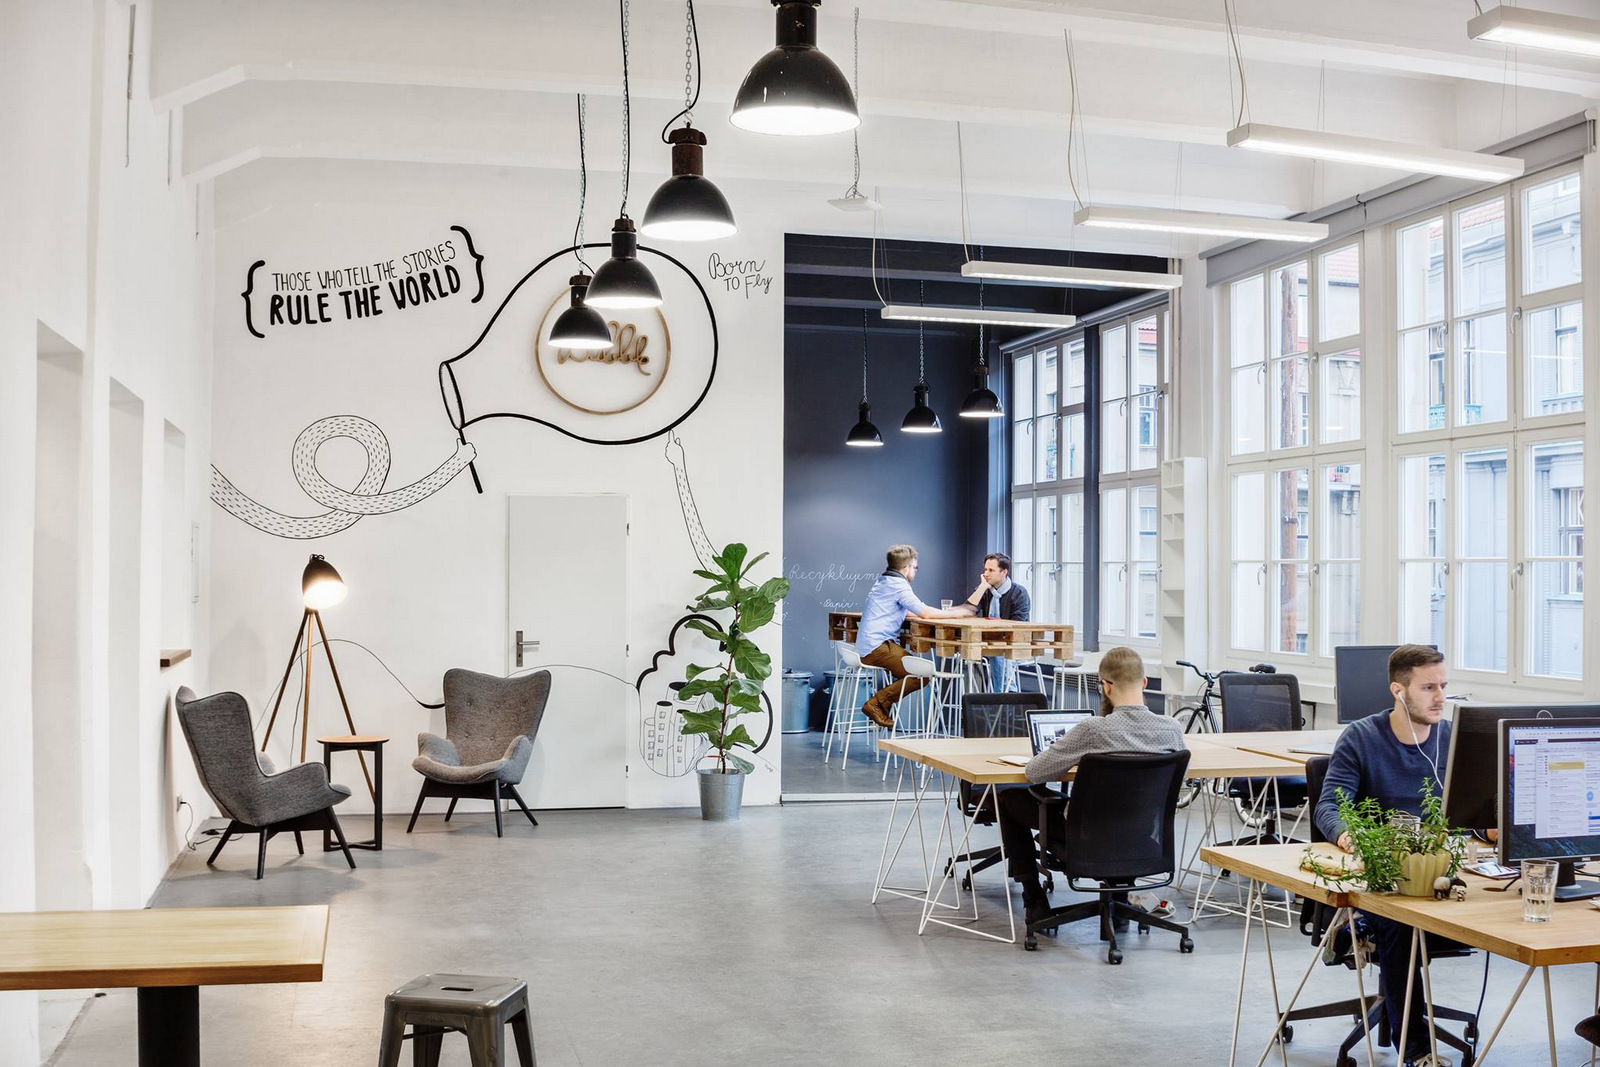 Why Serviced Office is a growing trend in the world